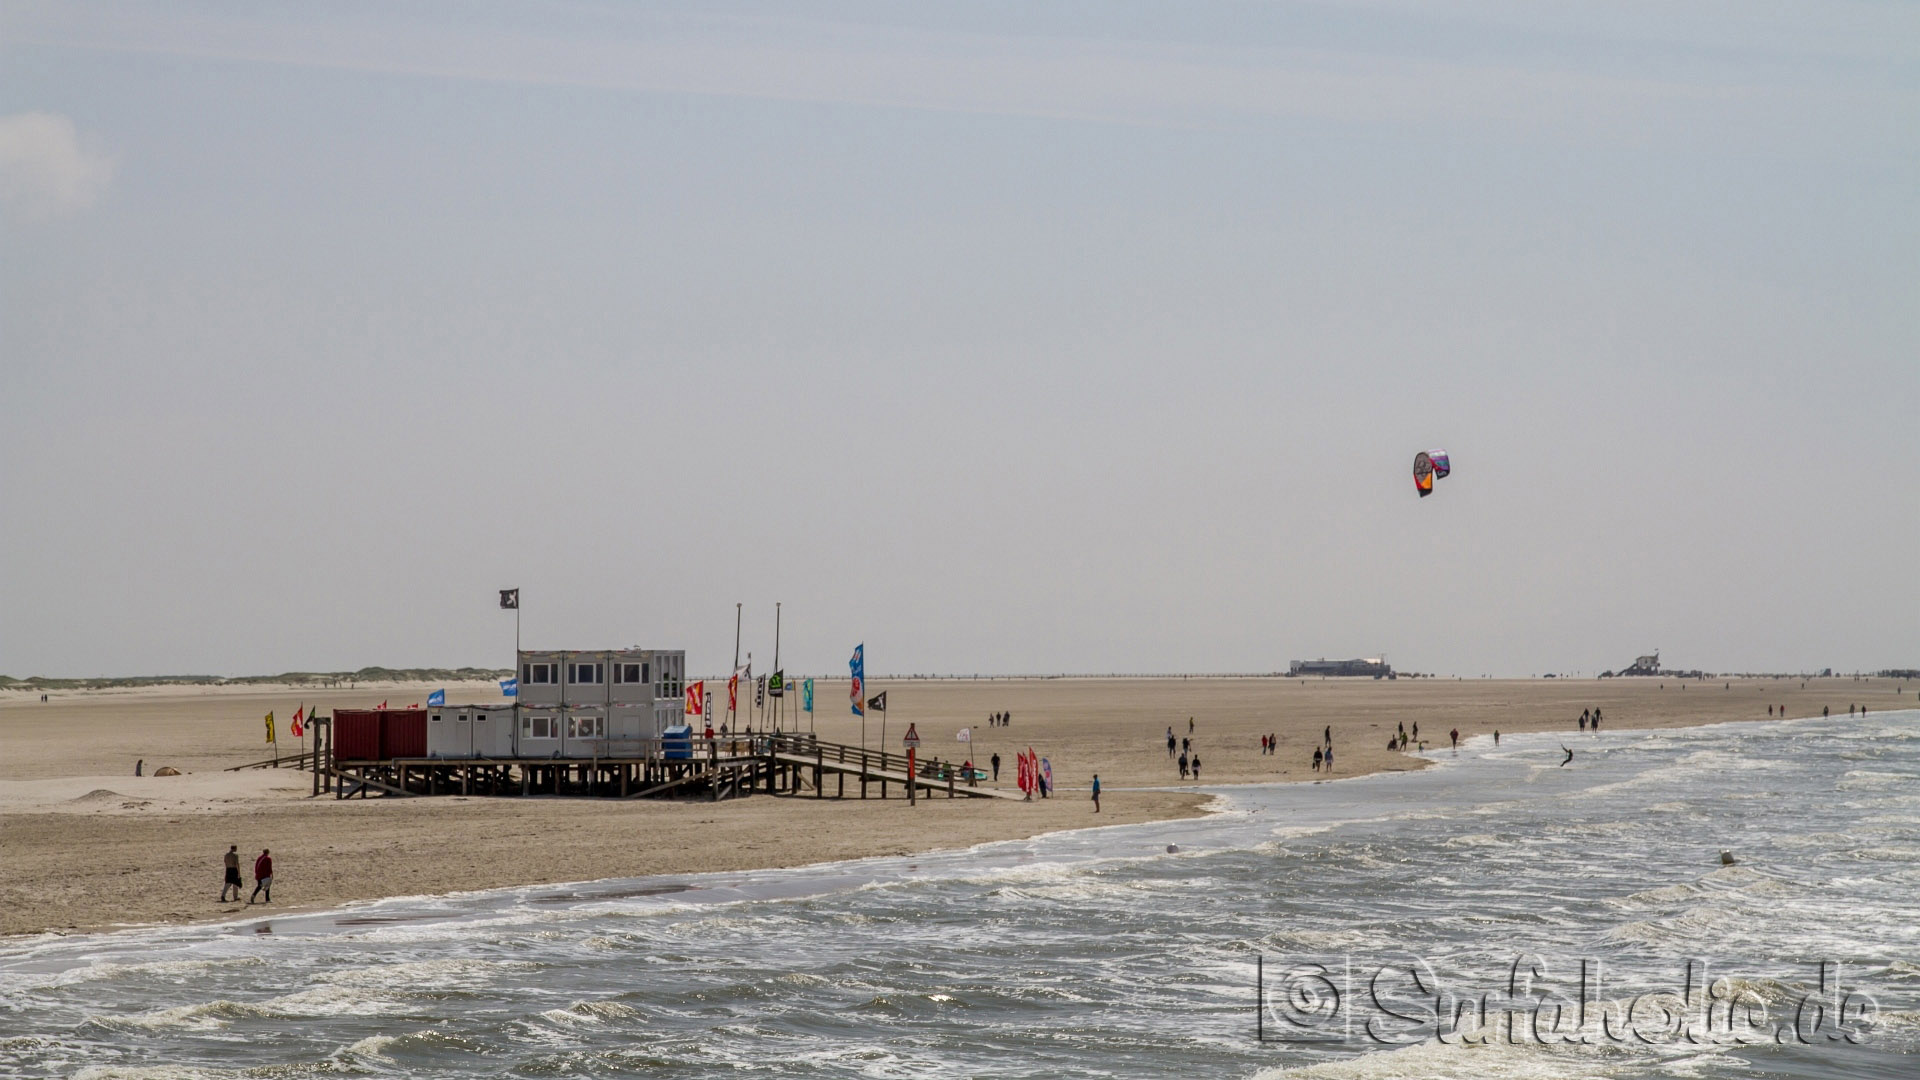 photos kategorie eiderstedt bild st peter ording chillen am strand. Black Bedroom Furniture Sets. Home Design Ideas